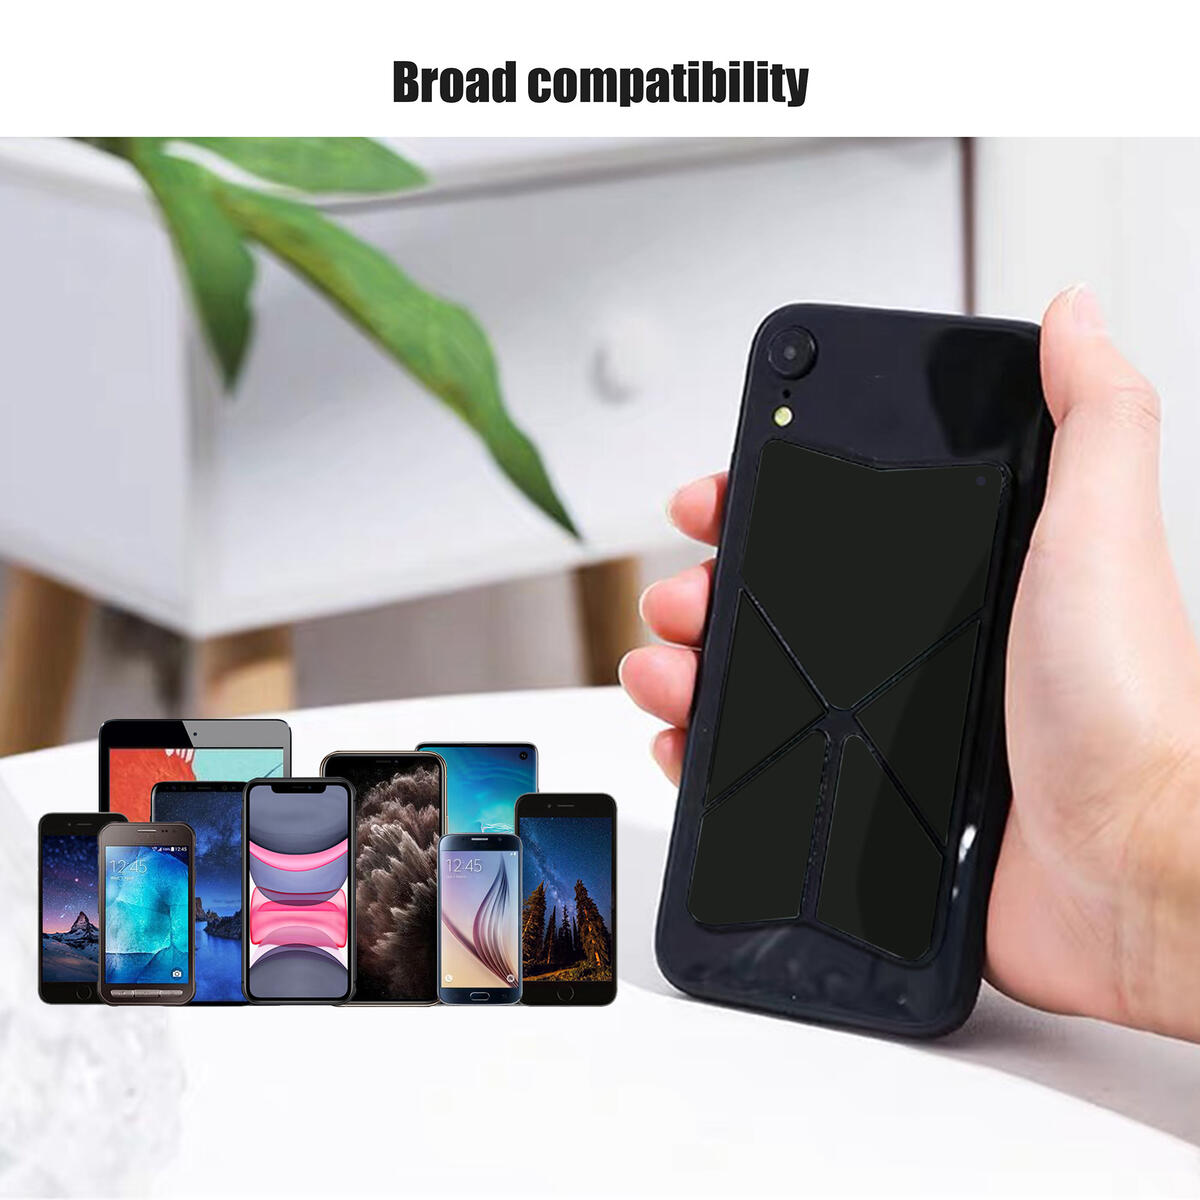 Universal Minimalist Invisible Stand/Holder/Bracket for Phone,Handle/Grip/Strap/Lanyard/Kickstand/Foldable/Magnet/Pocket/Ultrathin/Cell/Smart/iPhone/Android/iPad/Adhesive/Back/Sticker